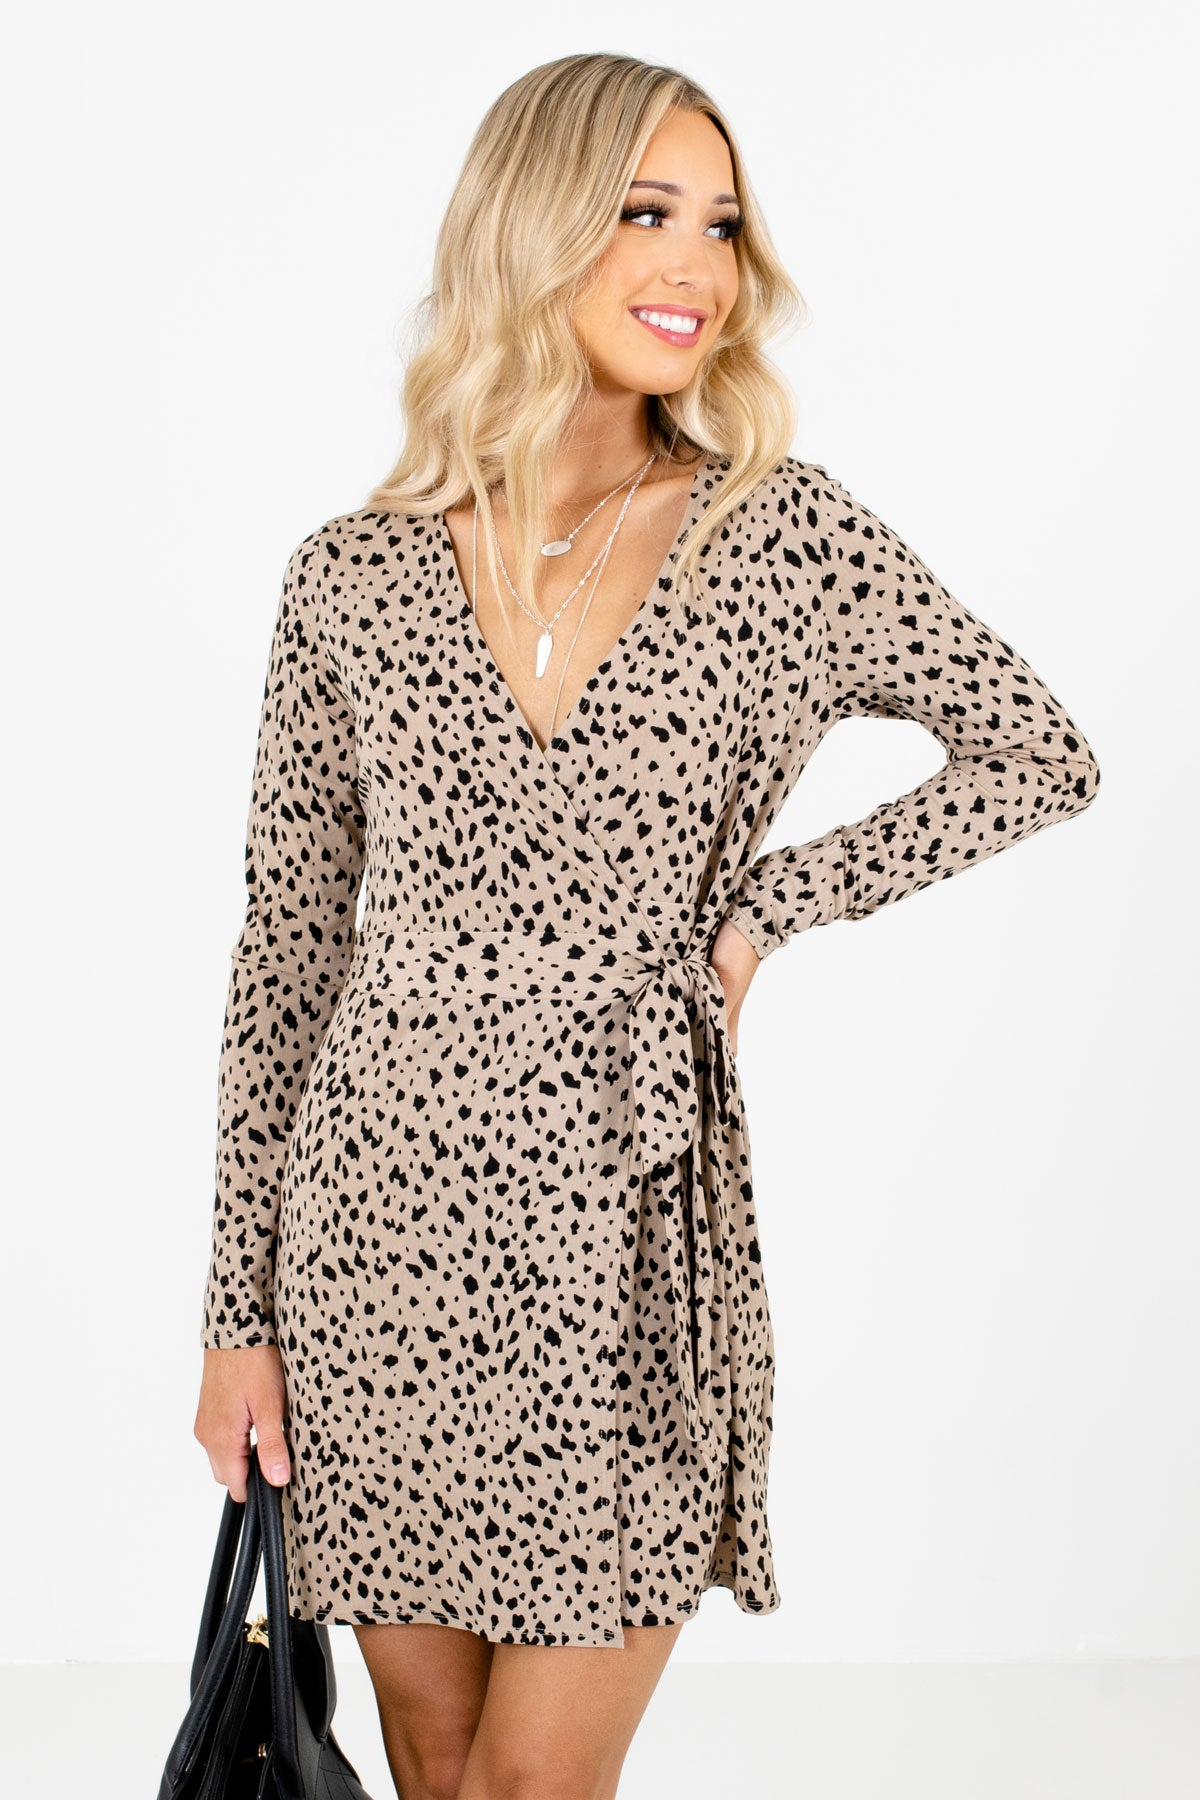 Taupe Brown and Black Leopard Print Patterned Boutique Mini Dresses for Women